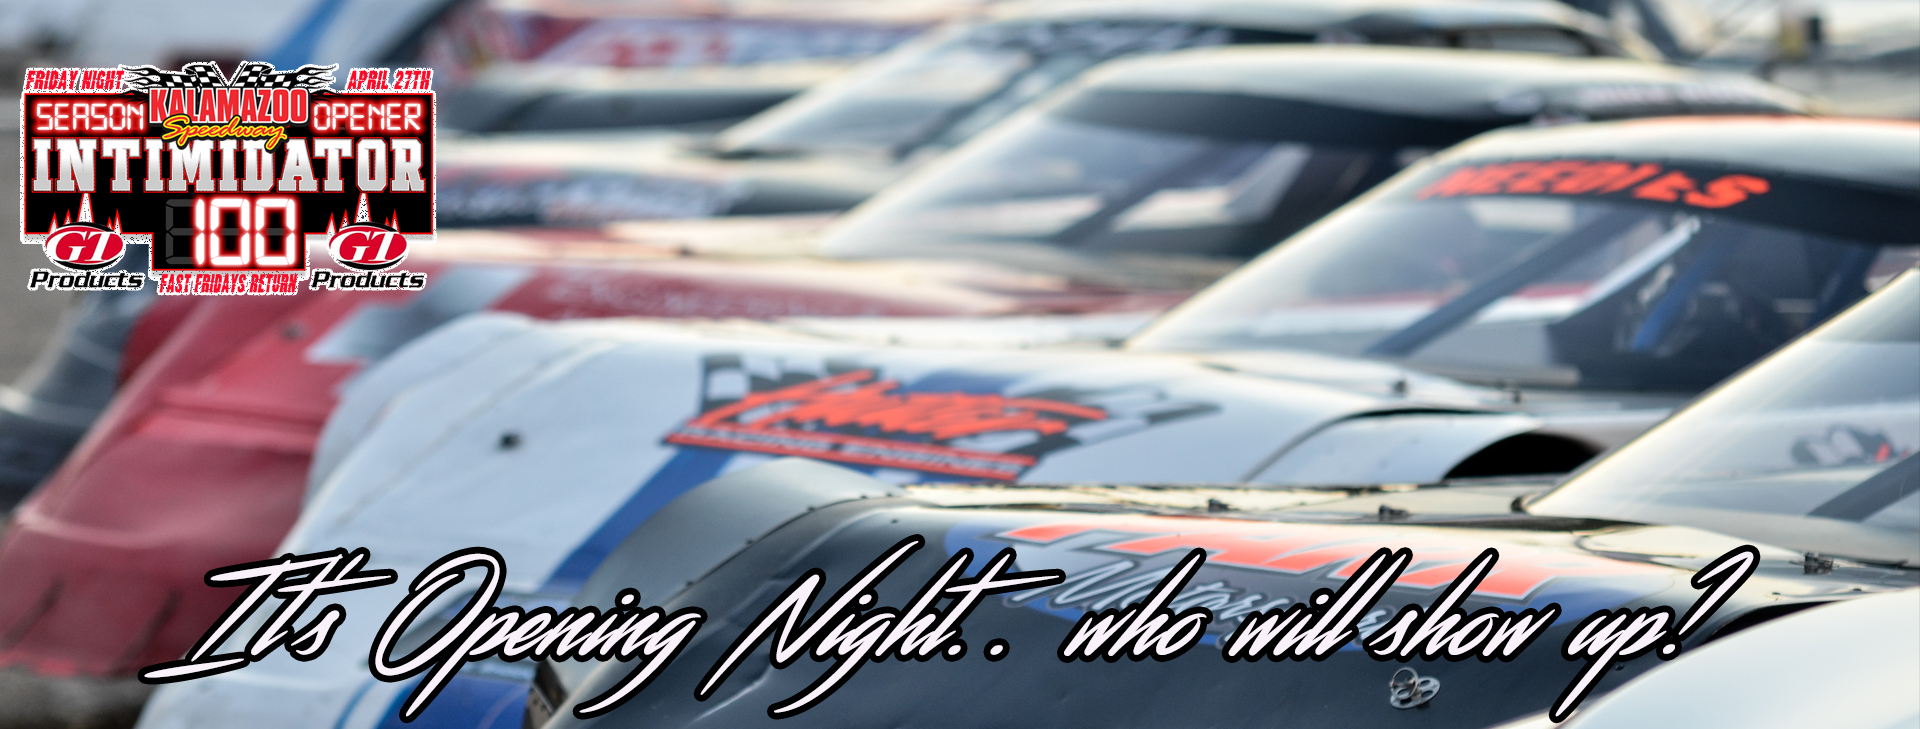 SEASON OPENER - STOCK FIVE NIGHT featuring the GT Products Intimidator 100 for the Outlaw Super Late Models - $2,500 to Win - $1,000 to Win Midwest Compacts & Outlaw FWD